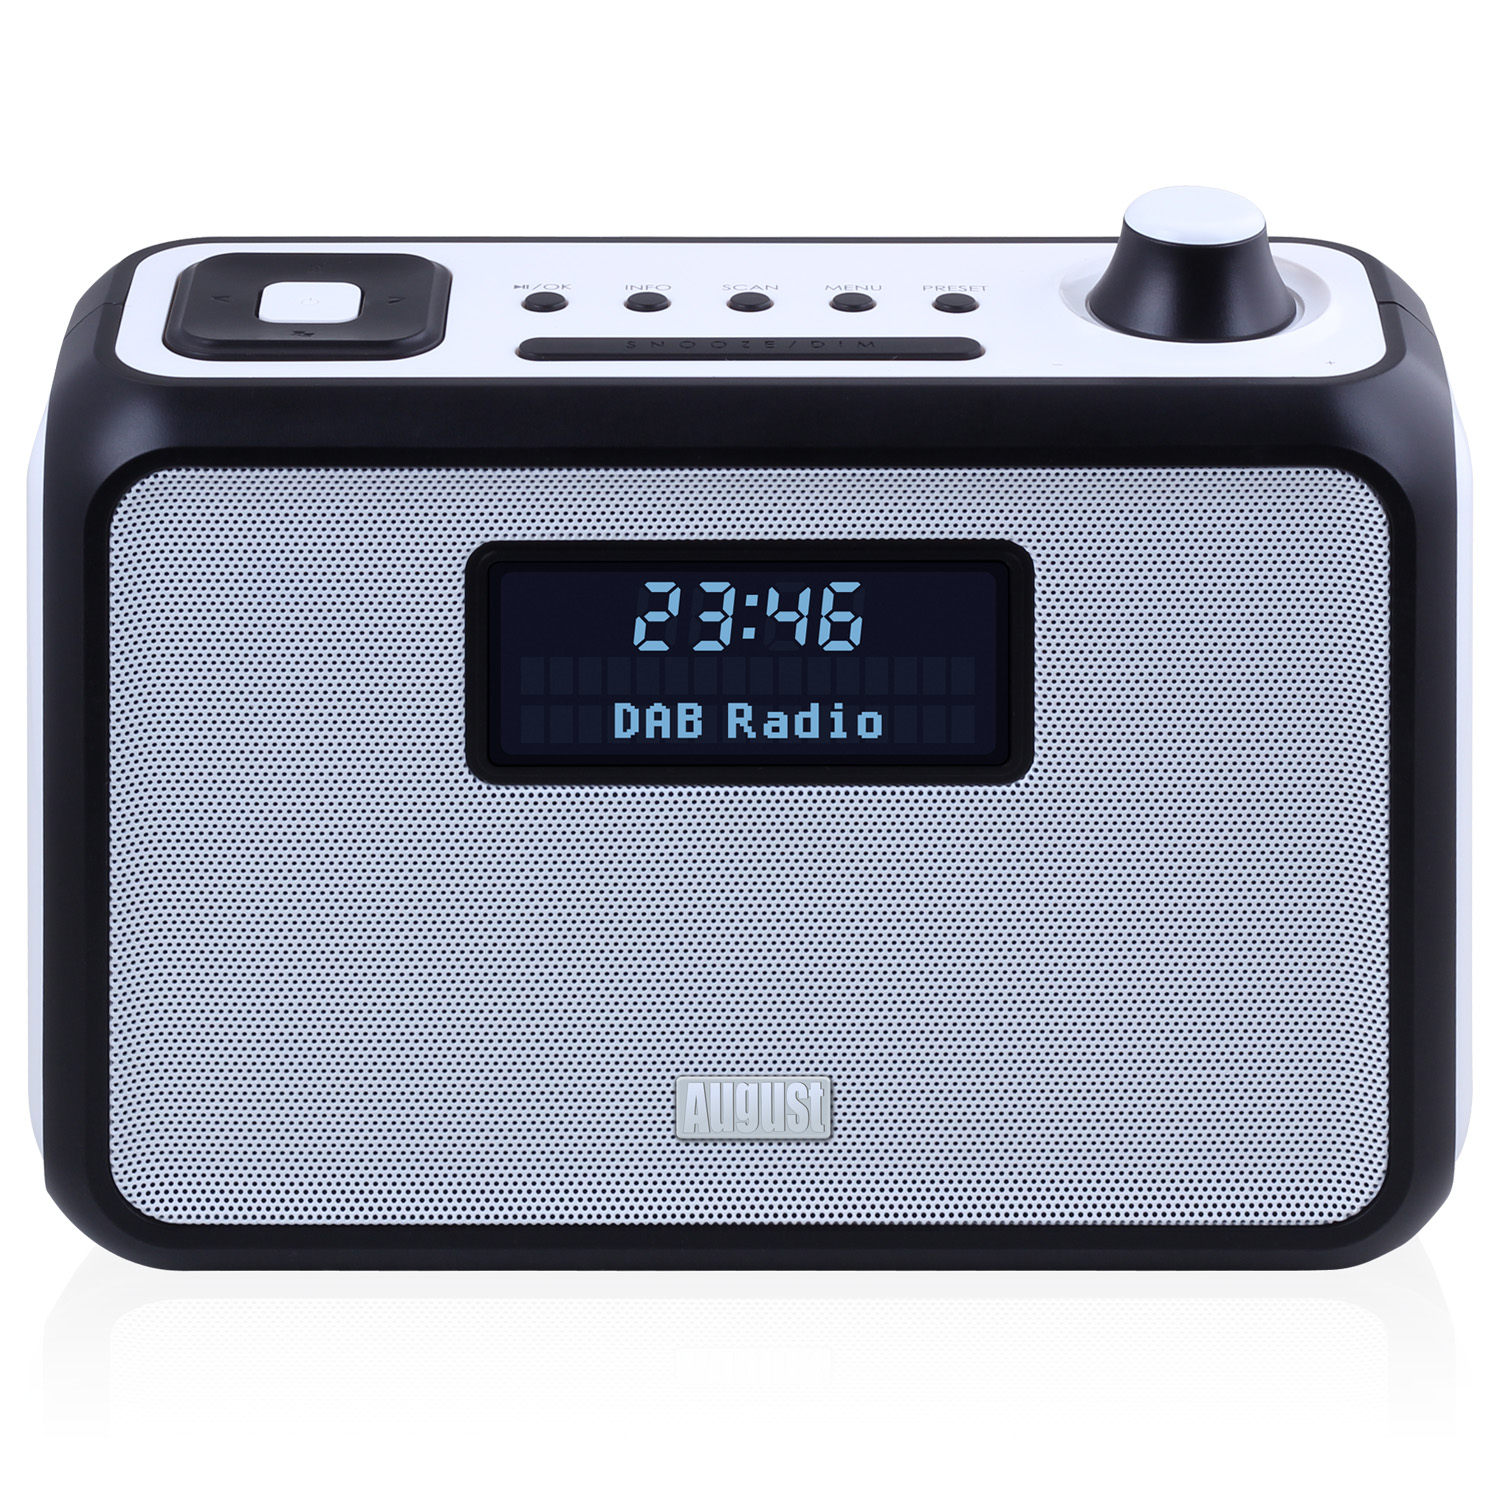 scarpa  MB400B  DAB Radio with Bluetooth. Portable TV  Portable Freeview Digital TV  Handheld TV  Bluetooth